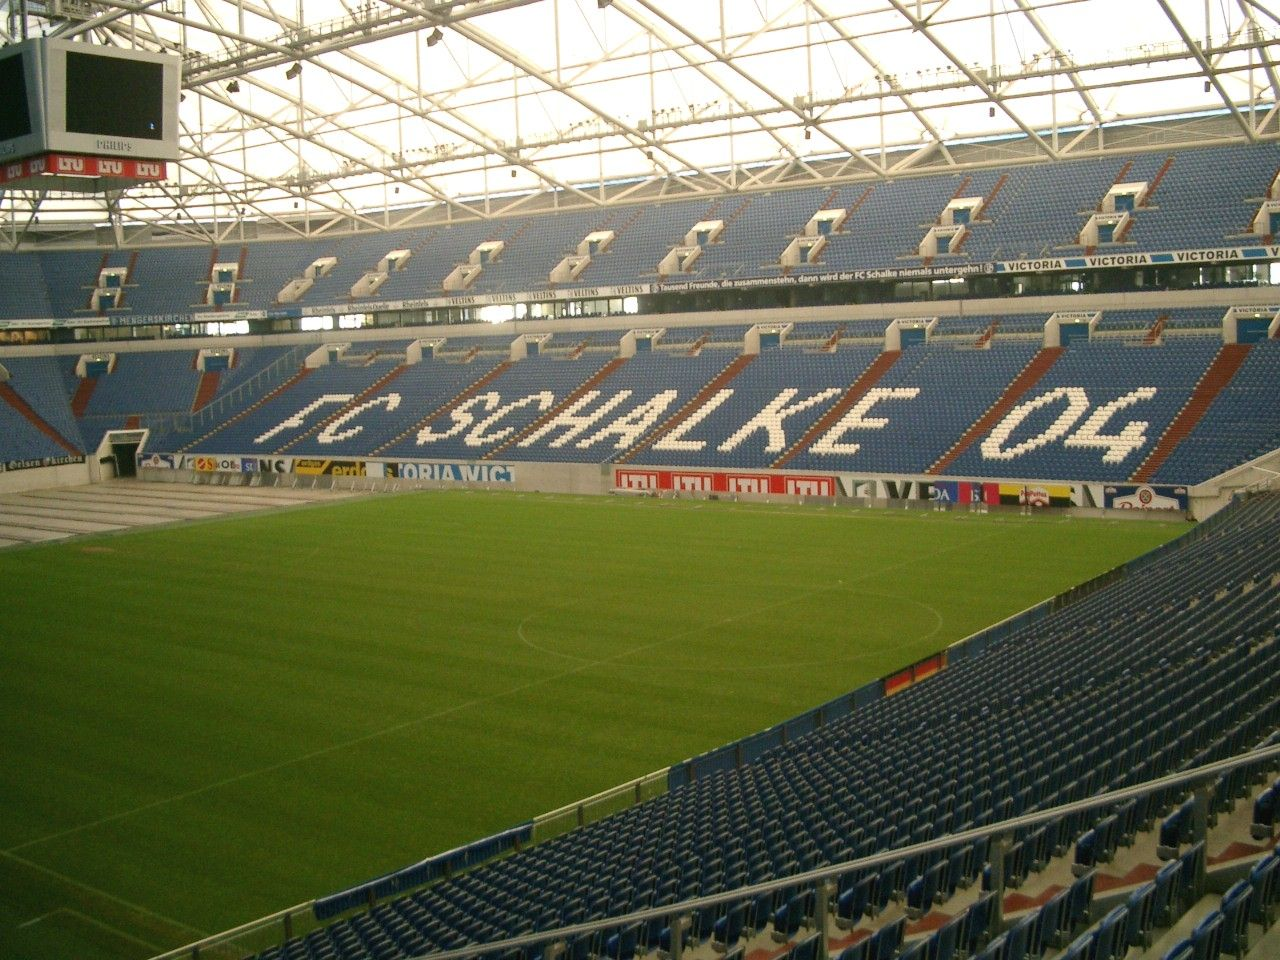 arena auf schalke. Black Bedroom Furniture Sets. Home Design Ideas